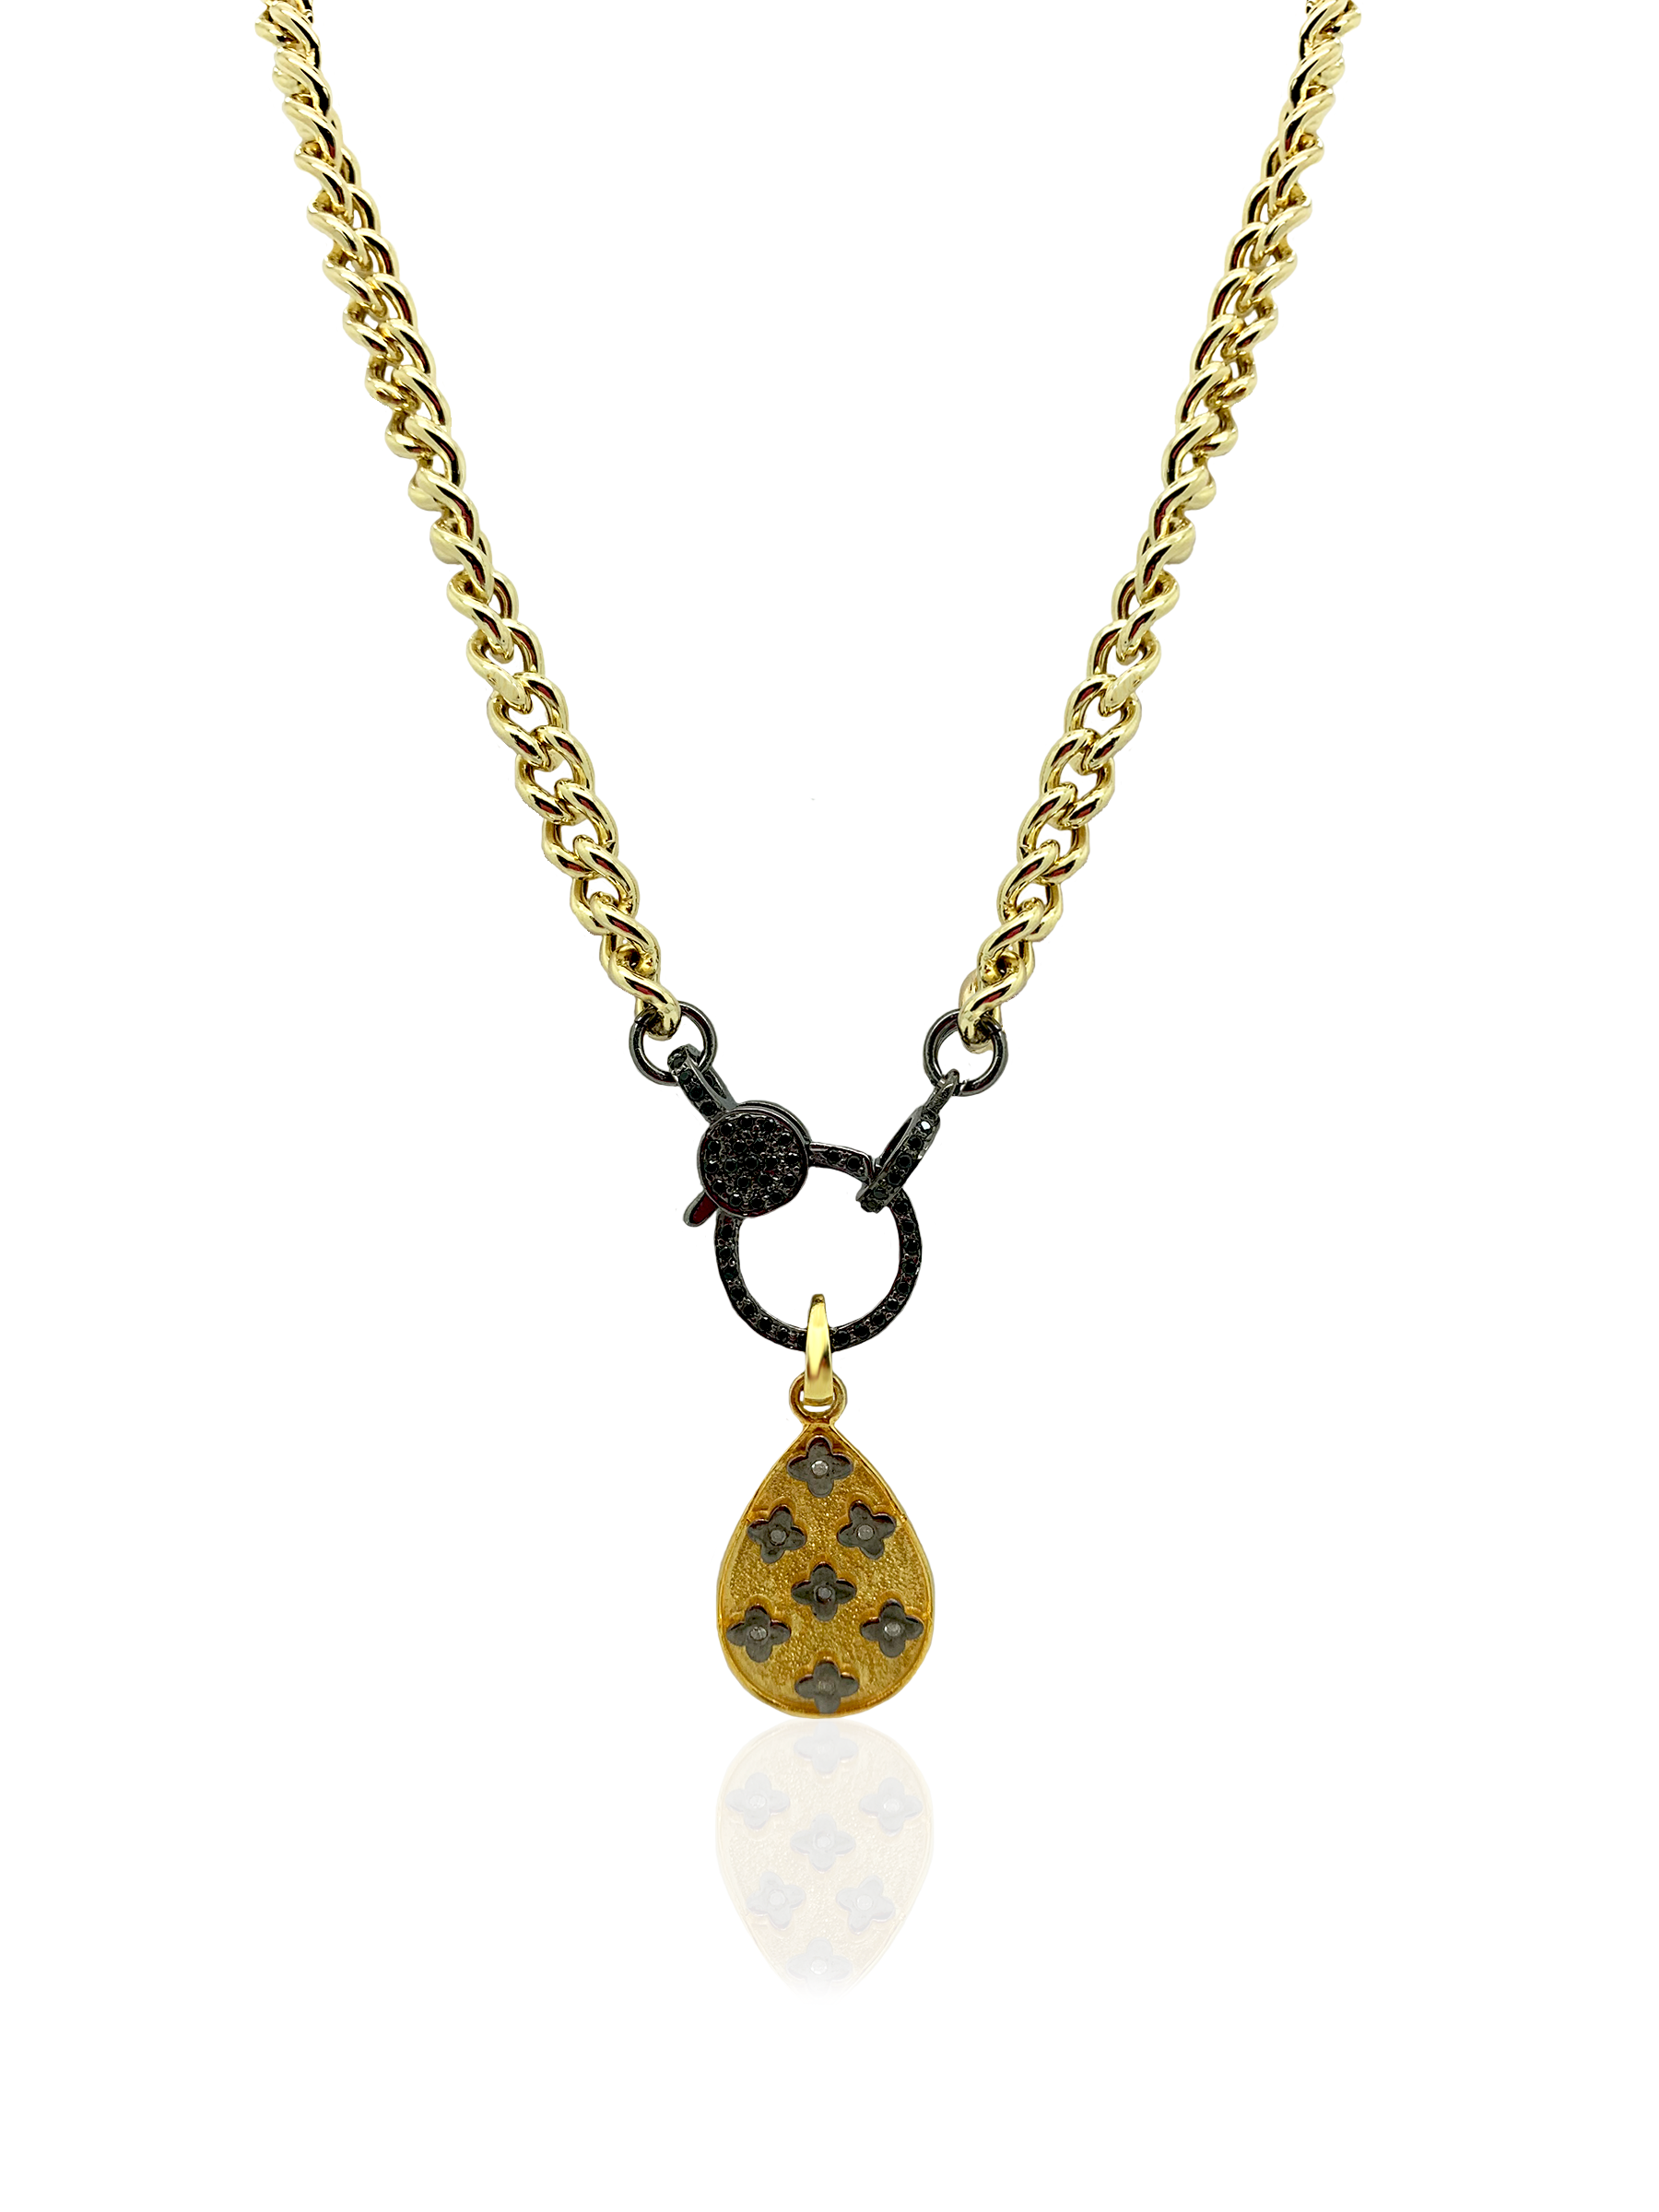 Gold Curb Chain with Spinel Clasp and Teardrop Pendent with Diamonds